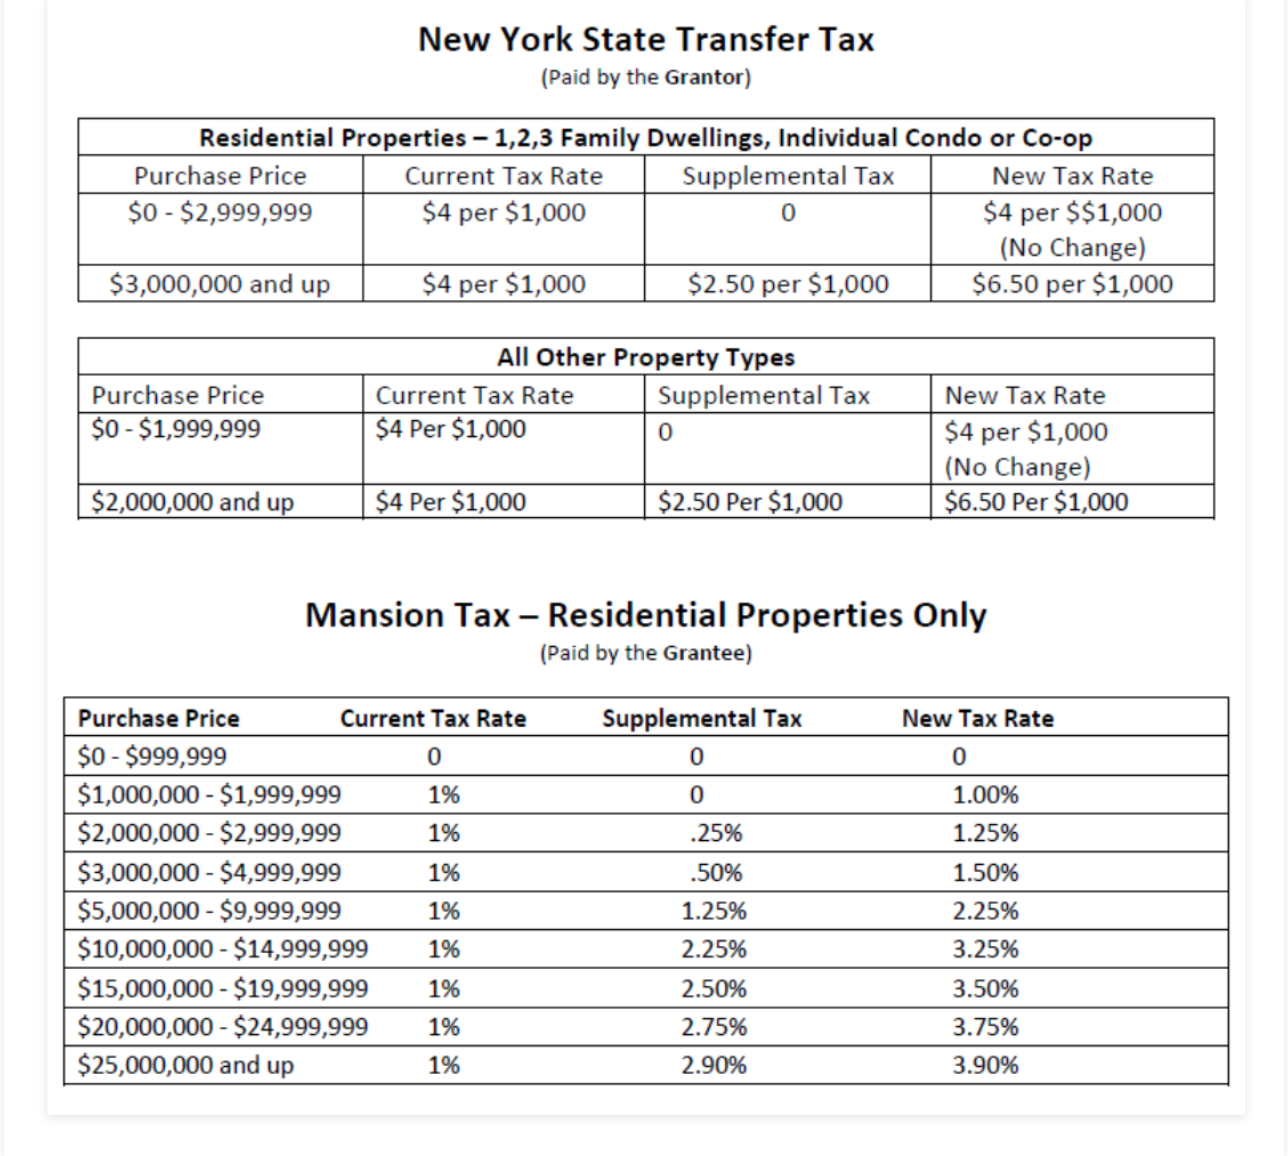 New York State real estate transfer tax and New York City mansion tax